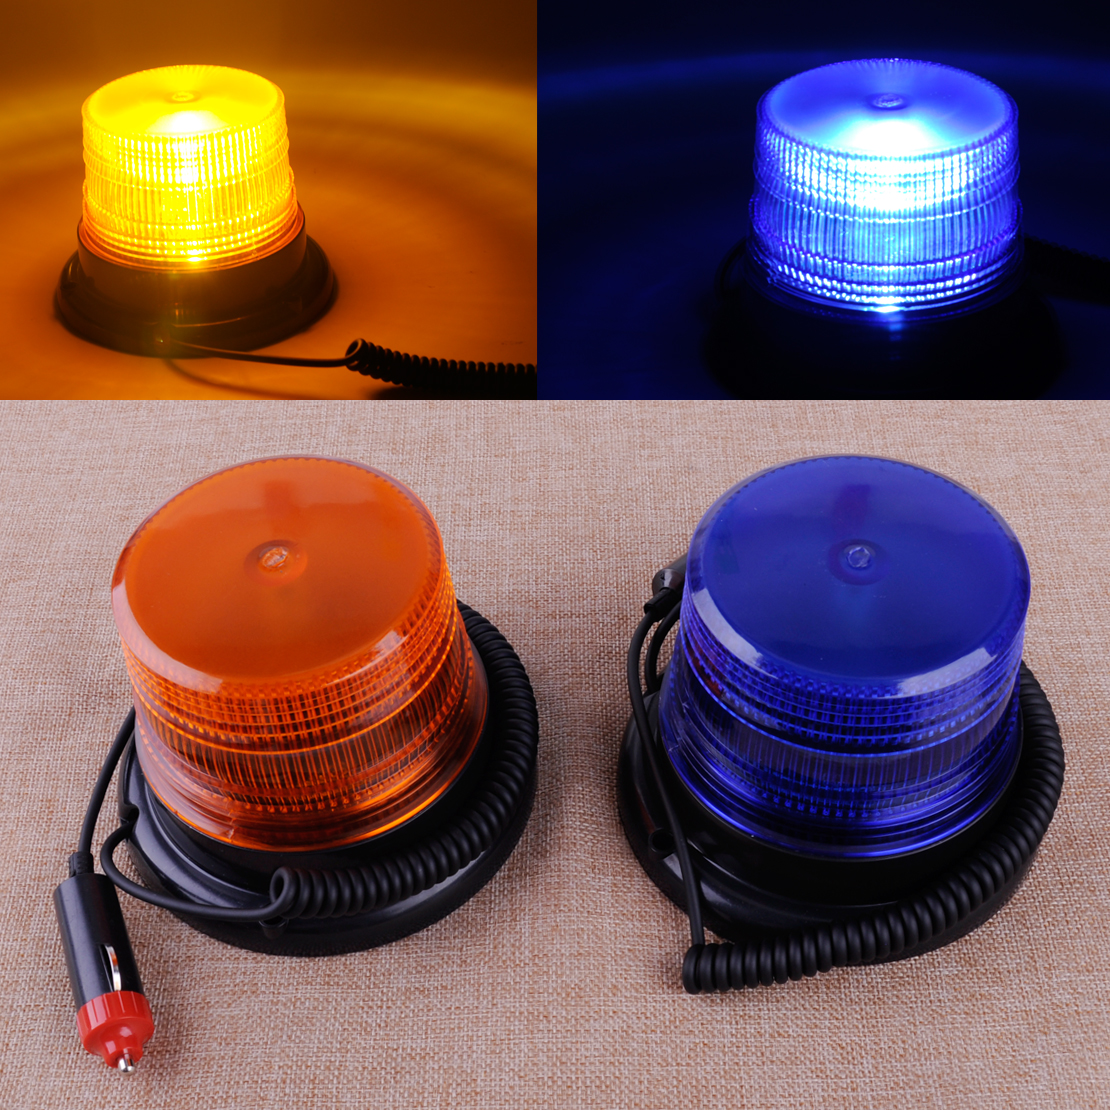 CITALL New 12V Car Truck Bus Beacon Rotate Strobe Magnetic Flash Emergency Beacon Strobe Light Warning Alarm Flash LED Lamp